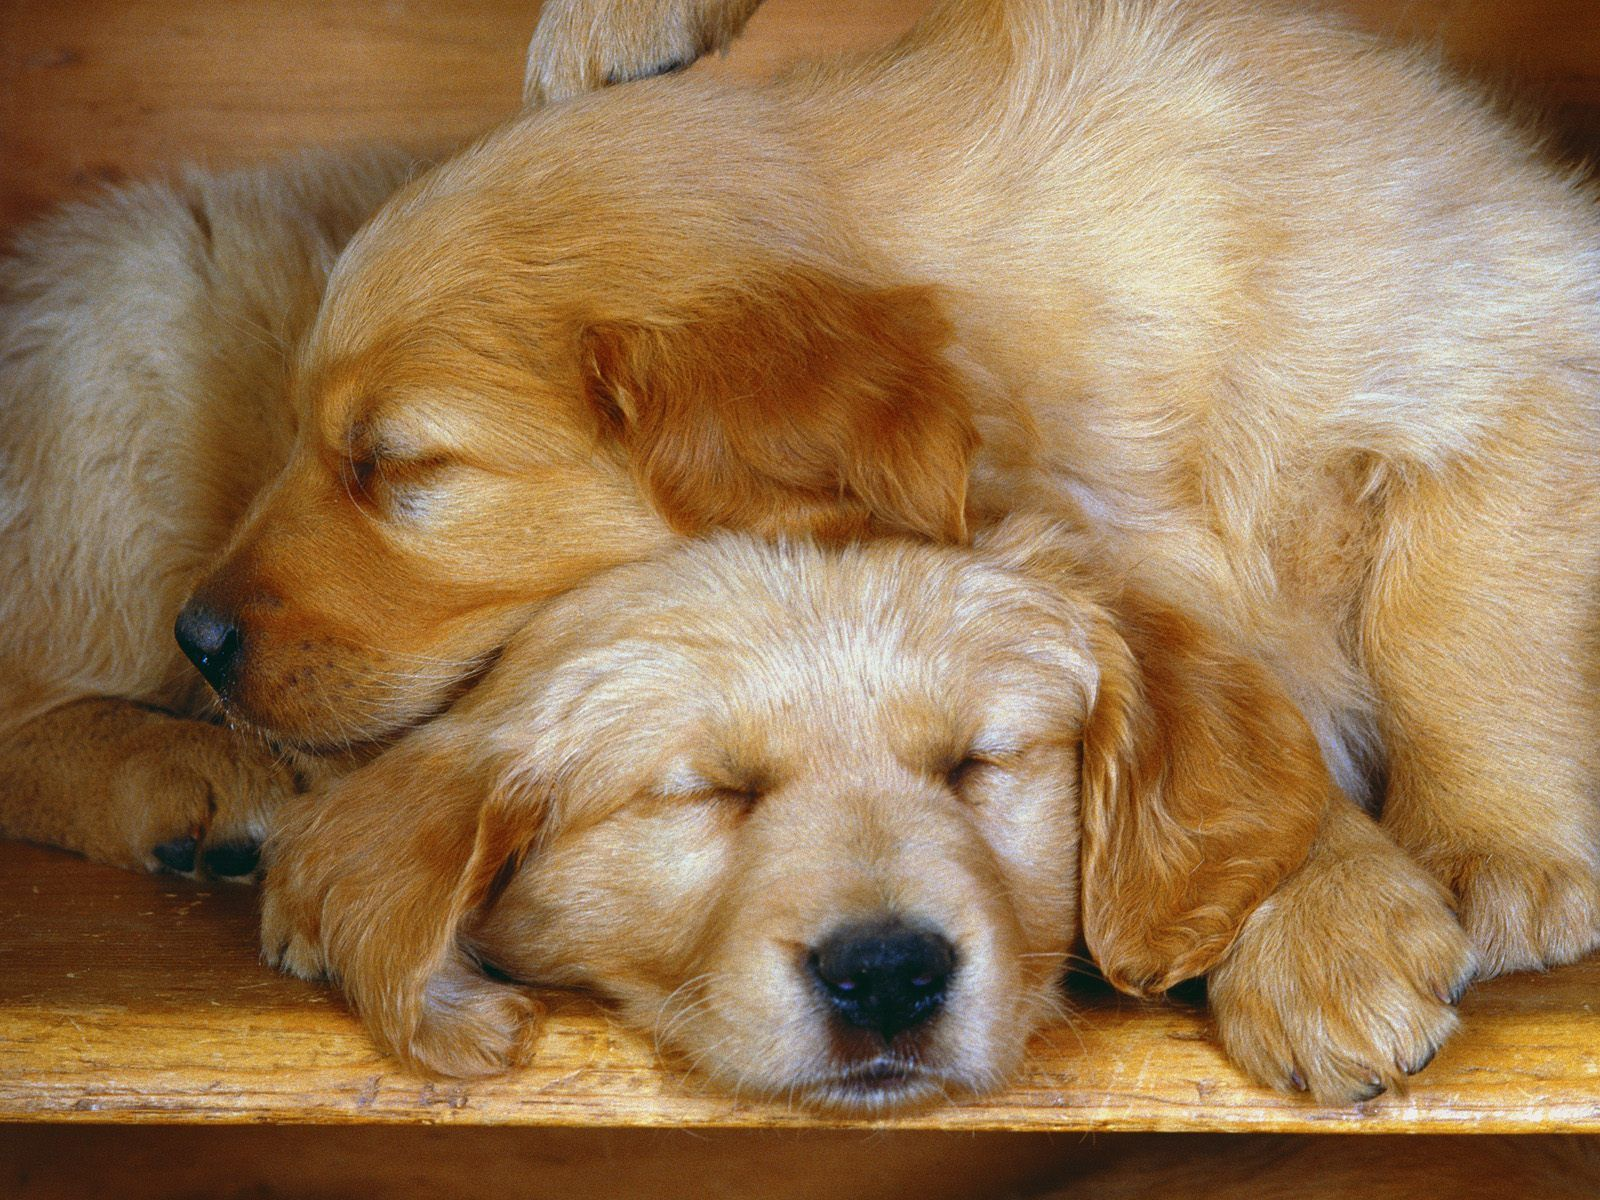 Cute dogs images cute dogs cool pic cute dogs cool images cute dogs